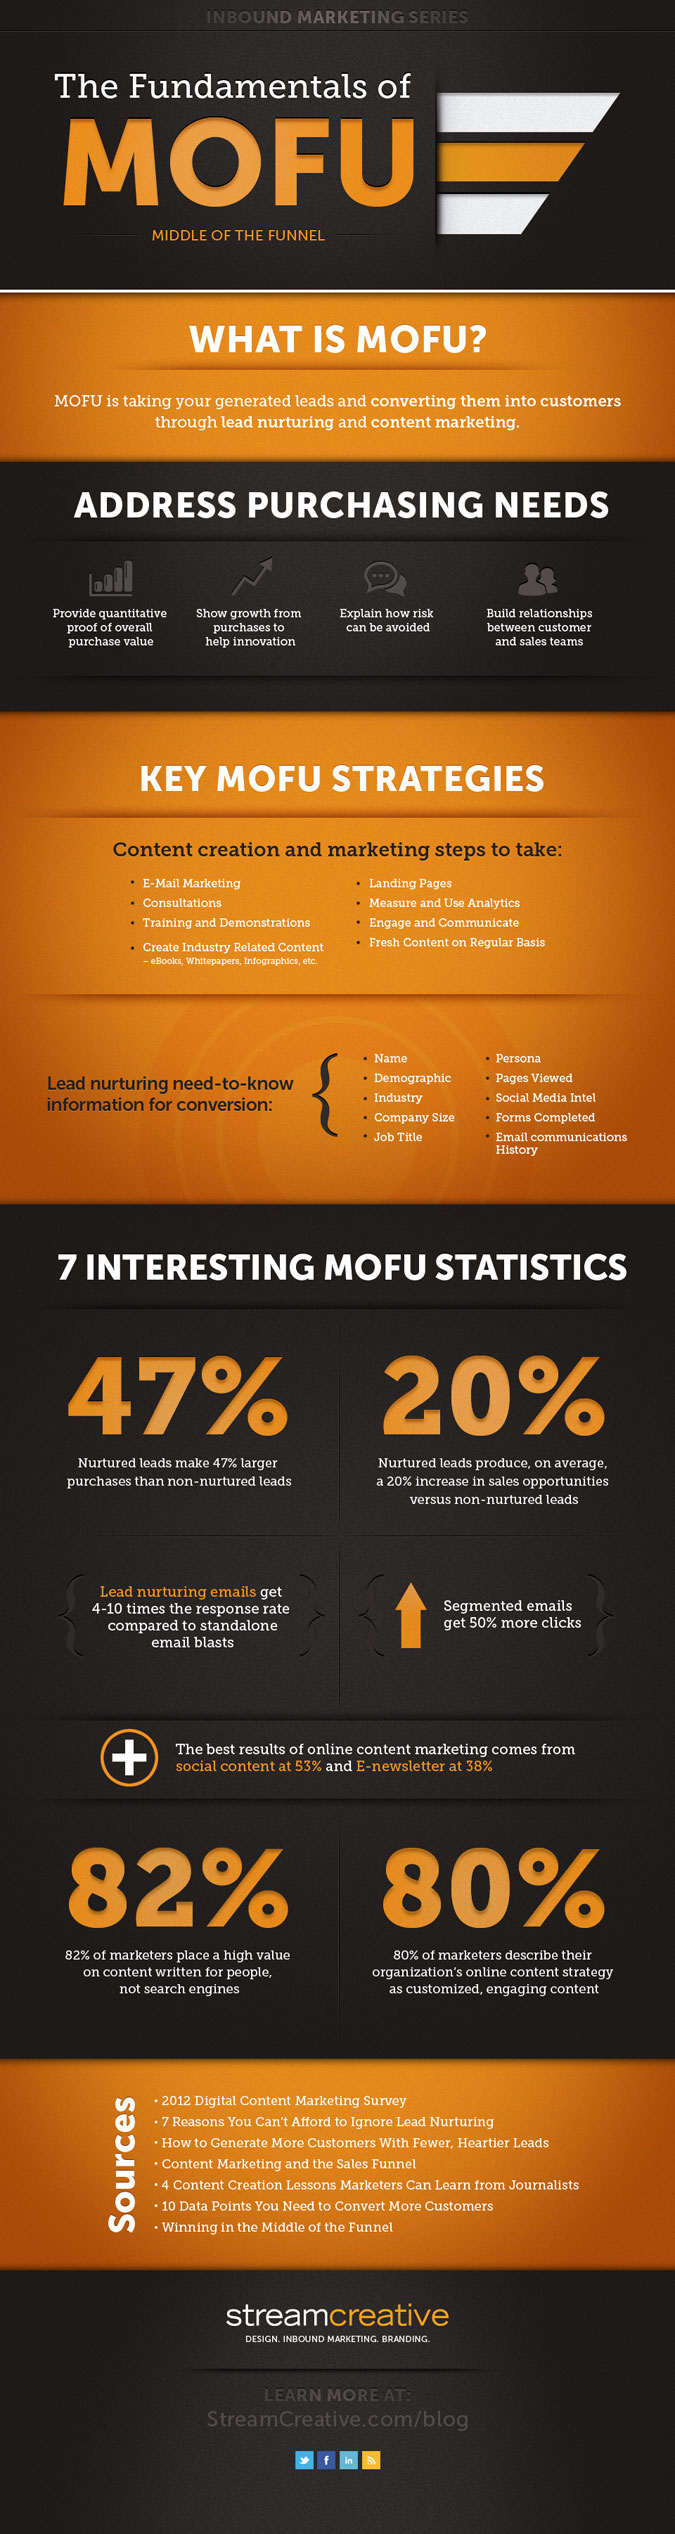 Middle of the Funnel (MOFU) Infographic